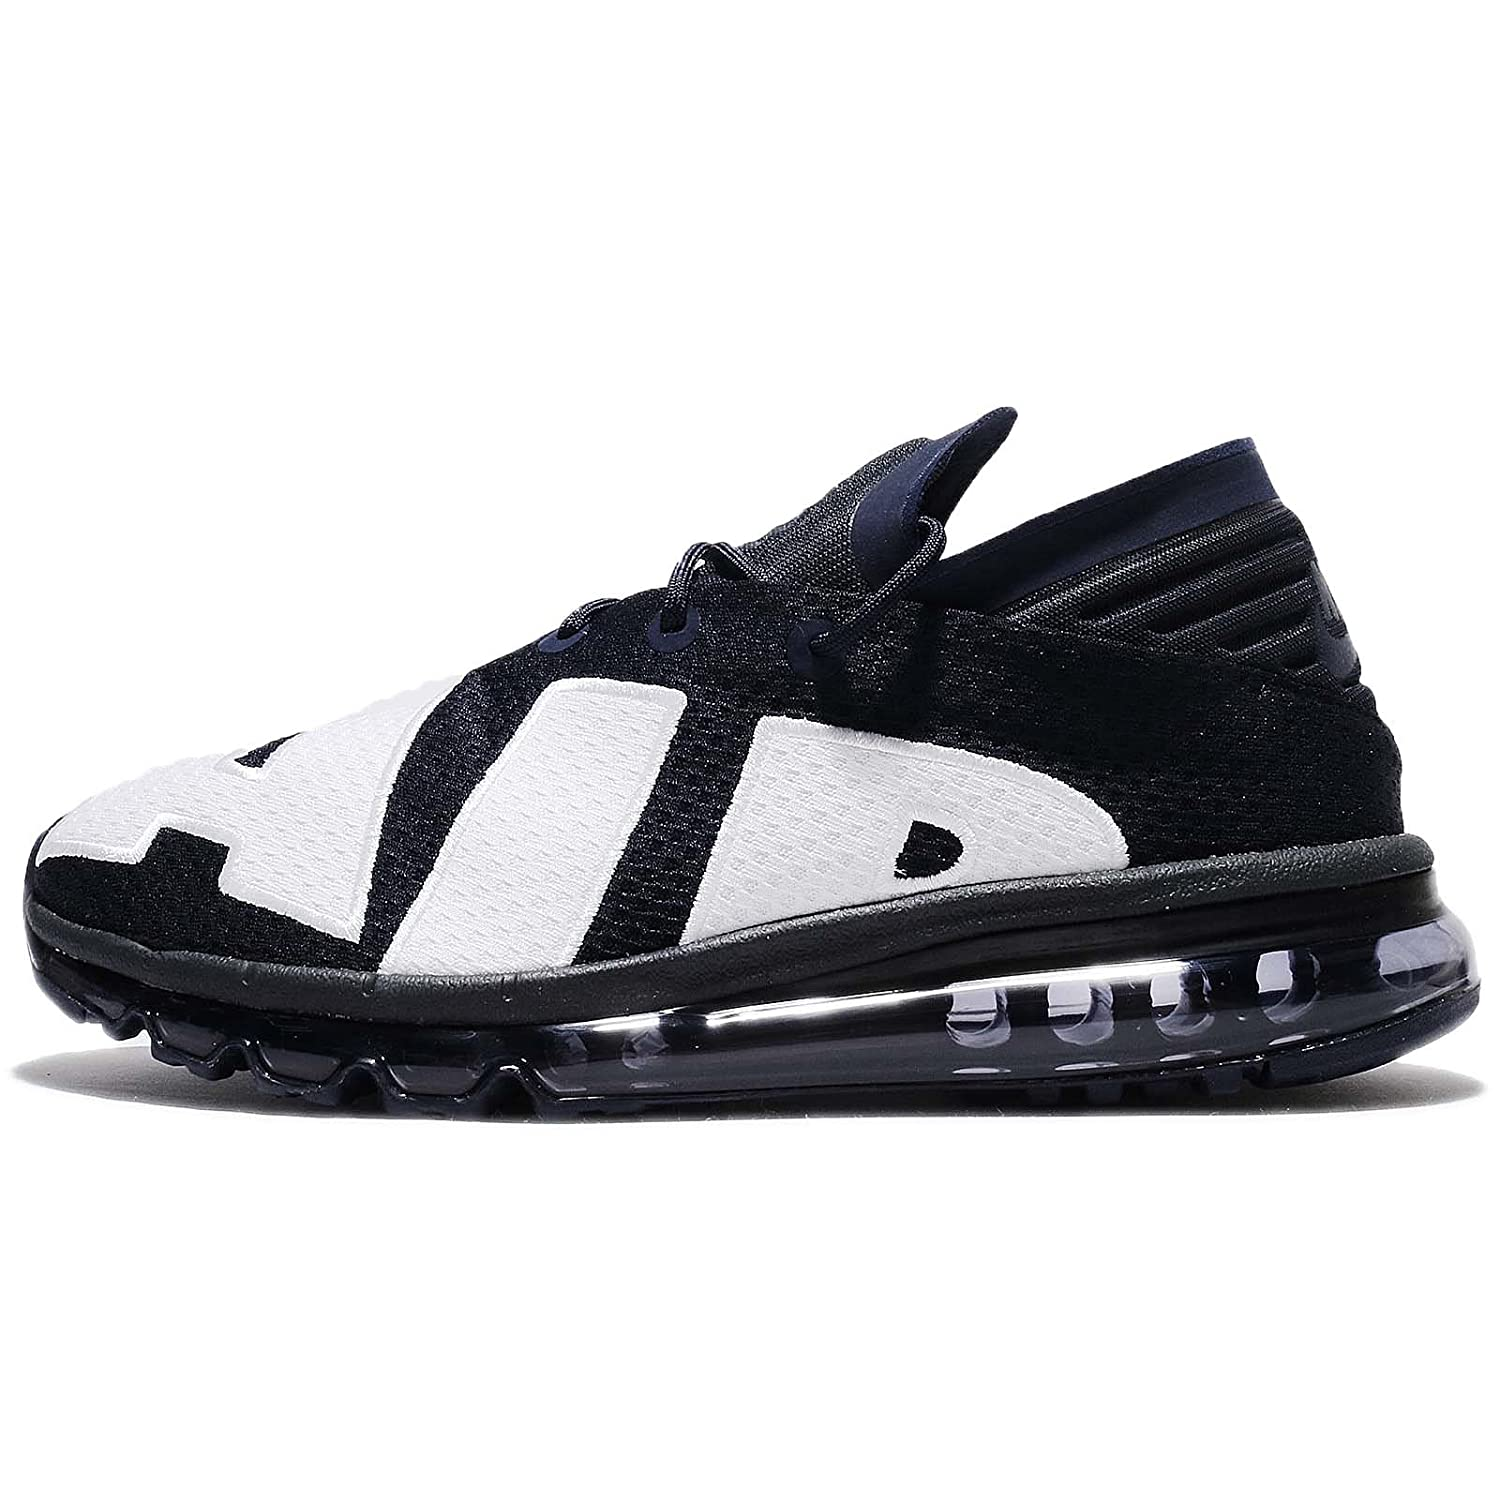 timeless design f3fbe 44a65 Amazon.com  NIKE AIR MAX FLAIR 942236 400 MENS RUNNING DARK OBSIDIAN NAVY  BLUE WHITE (9 D(M) US)  Shoes